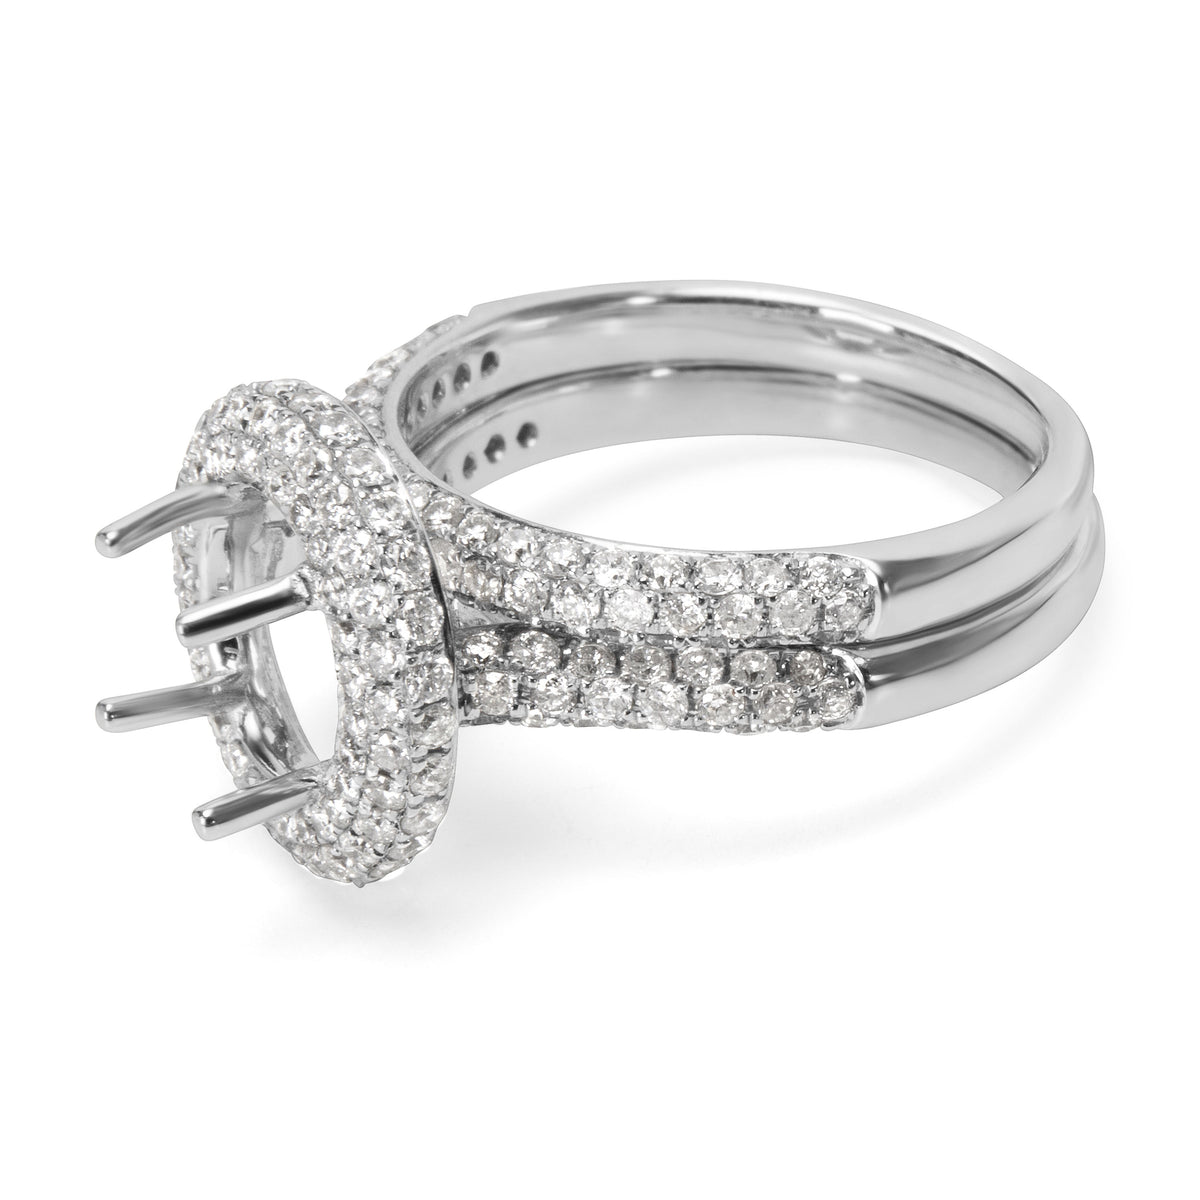 BRAND NEW Pave Diamond Engagement Ring Setting in 18KT White Gold (1.37 CTW)